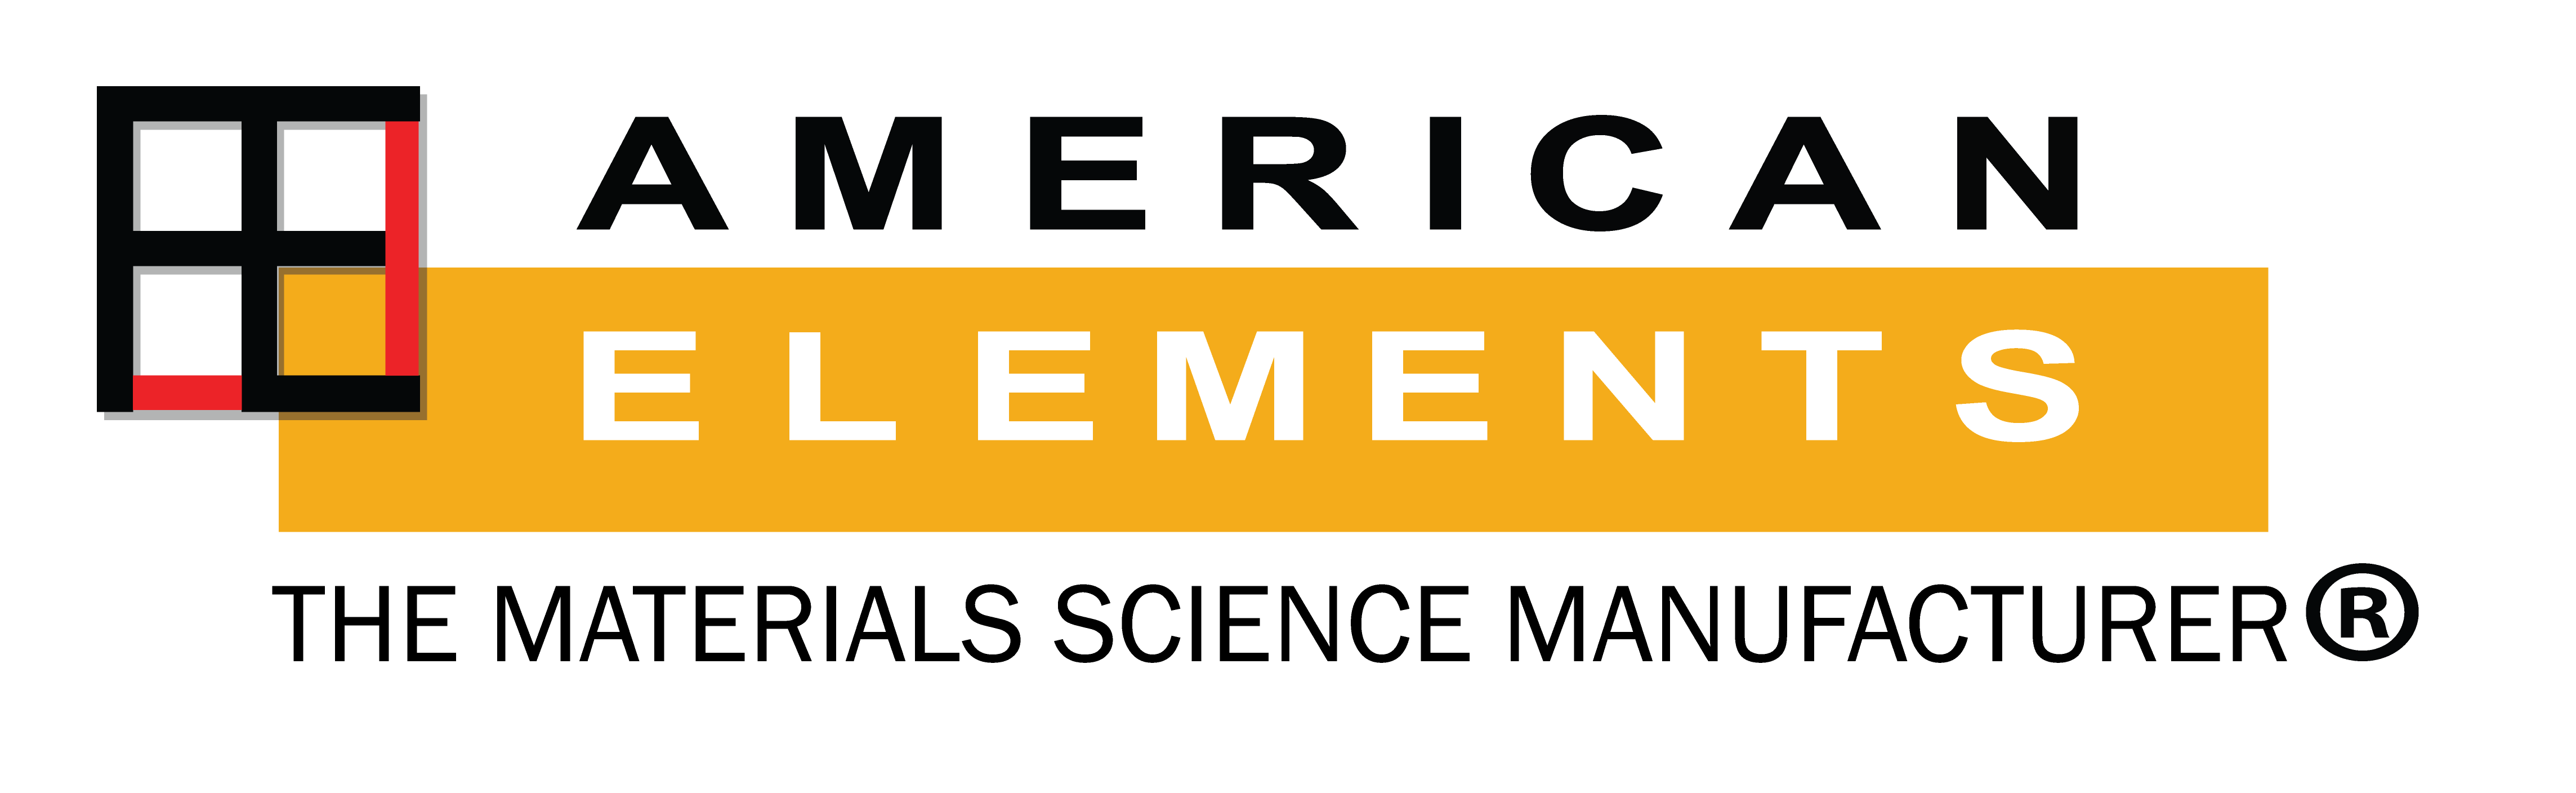 American Elements: global manufacturer of metals, specialty alloys, composites, & advanced aerospace materials